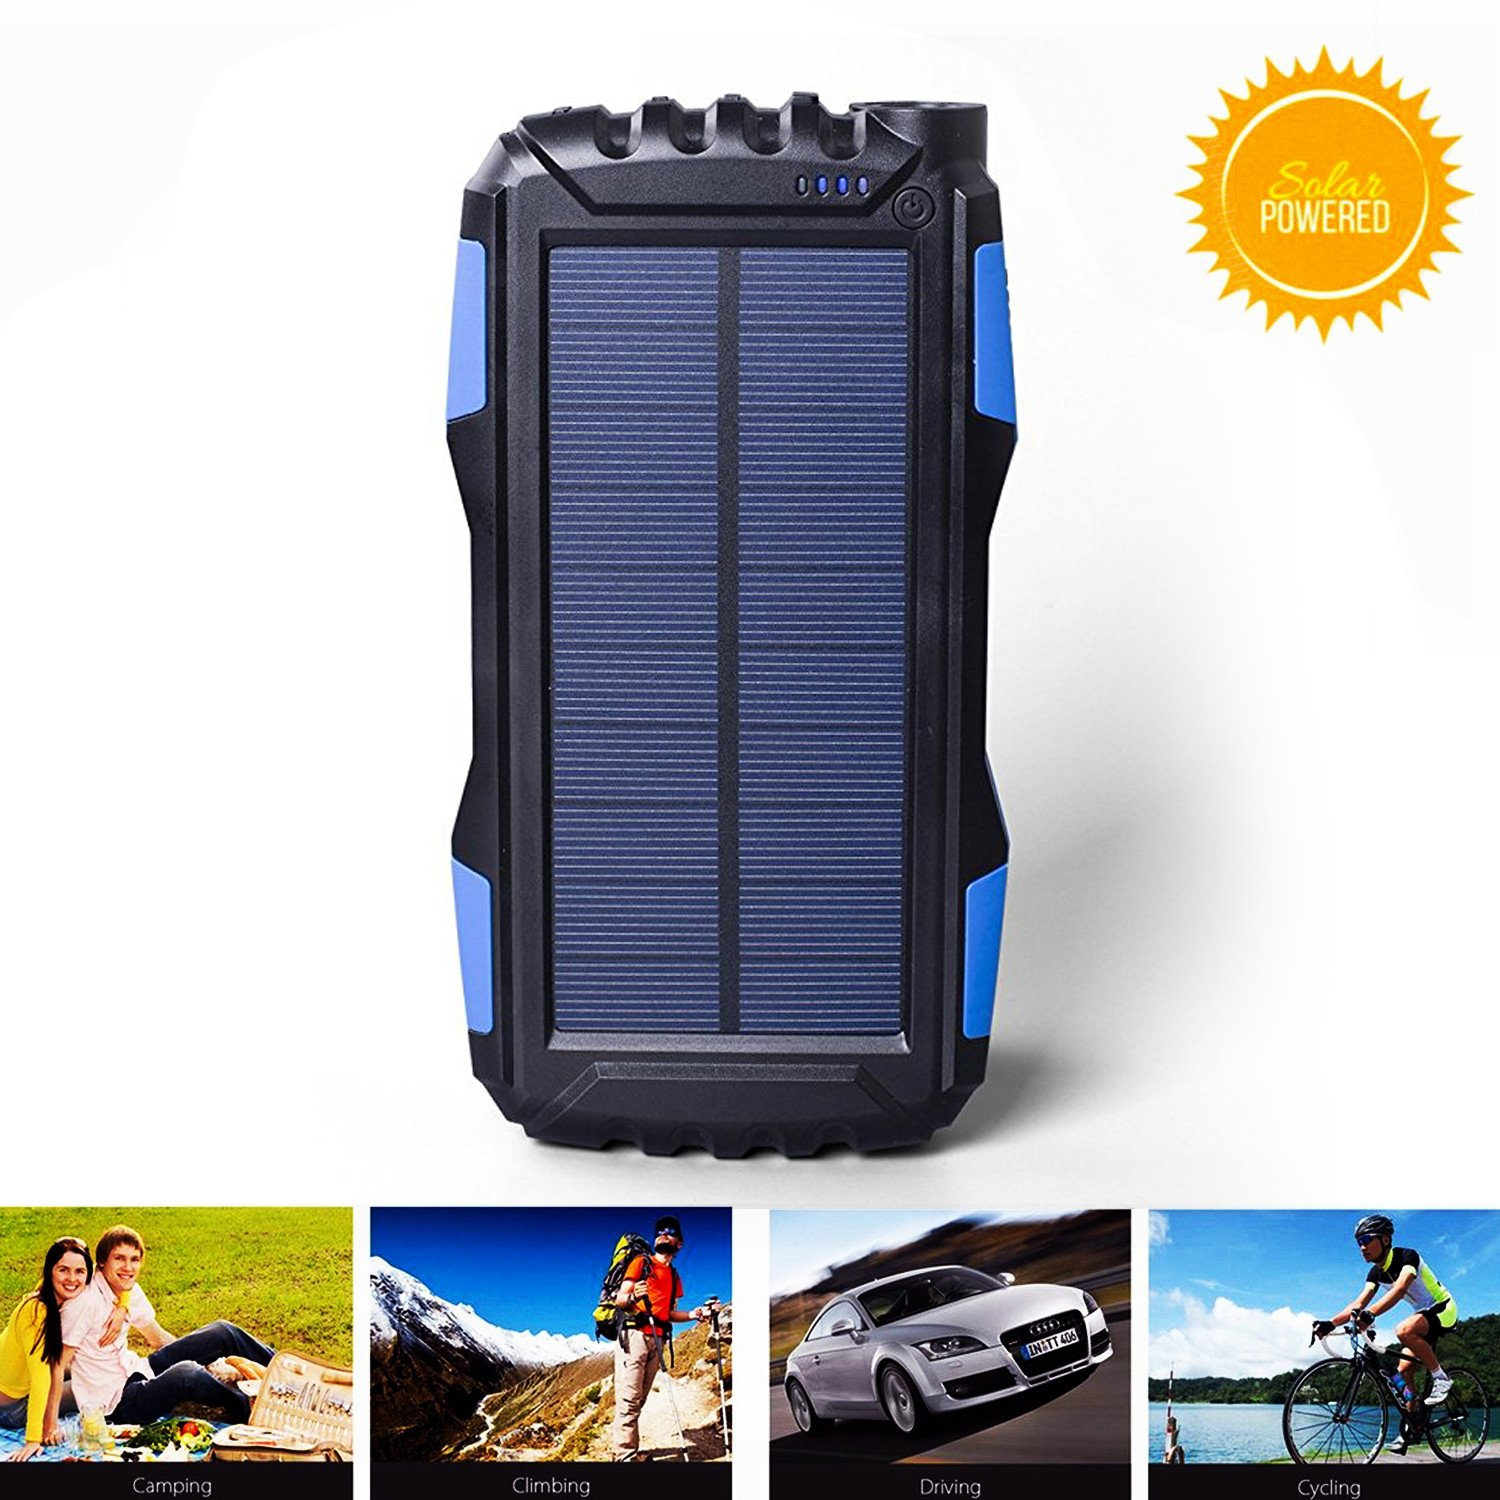 Solar Charger Kiizon 25000mAh Outdoor Portable Chargers Solar Power Bank Waterproof/Shockproof Dual USB Port External Backup Battery Powered Pack with Flashlight for iPhone, ipad, Smart Cell Phone, More 4335013708